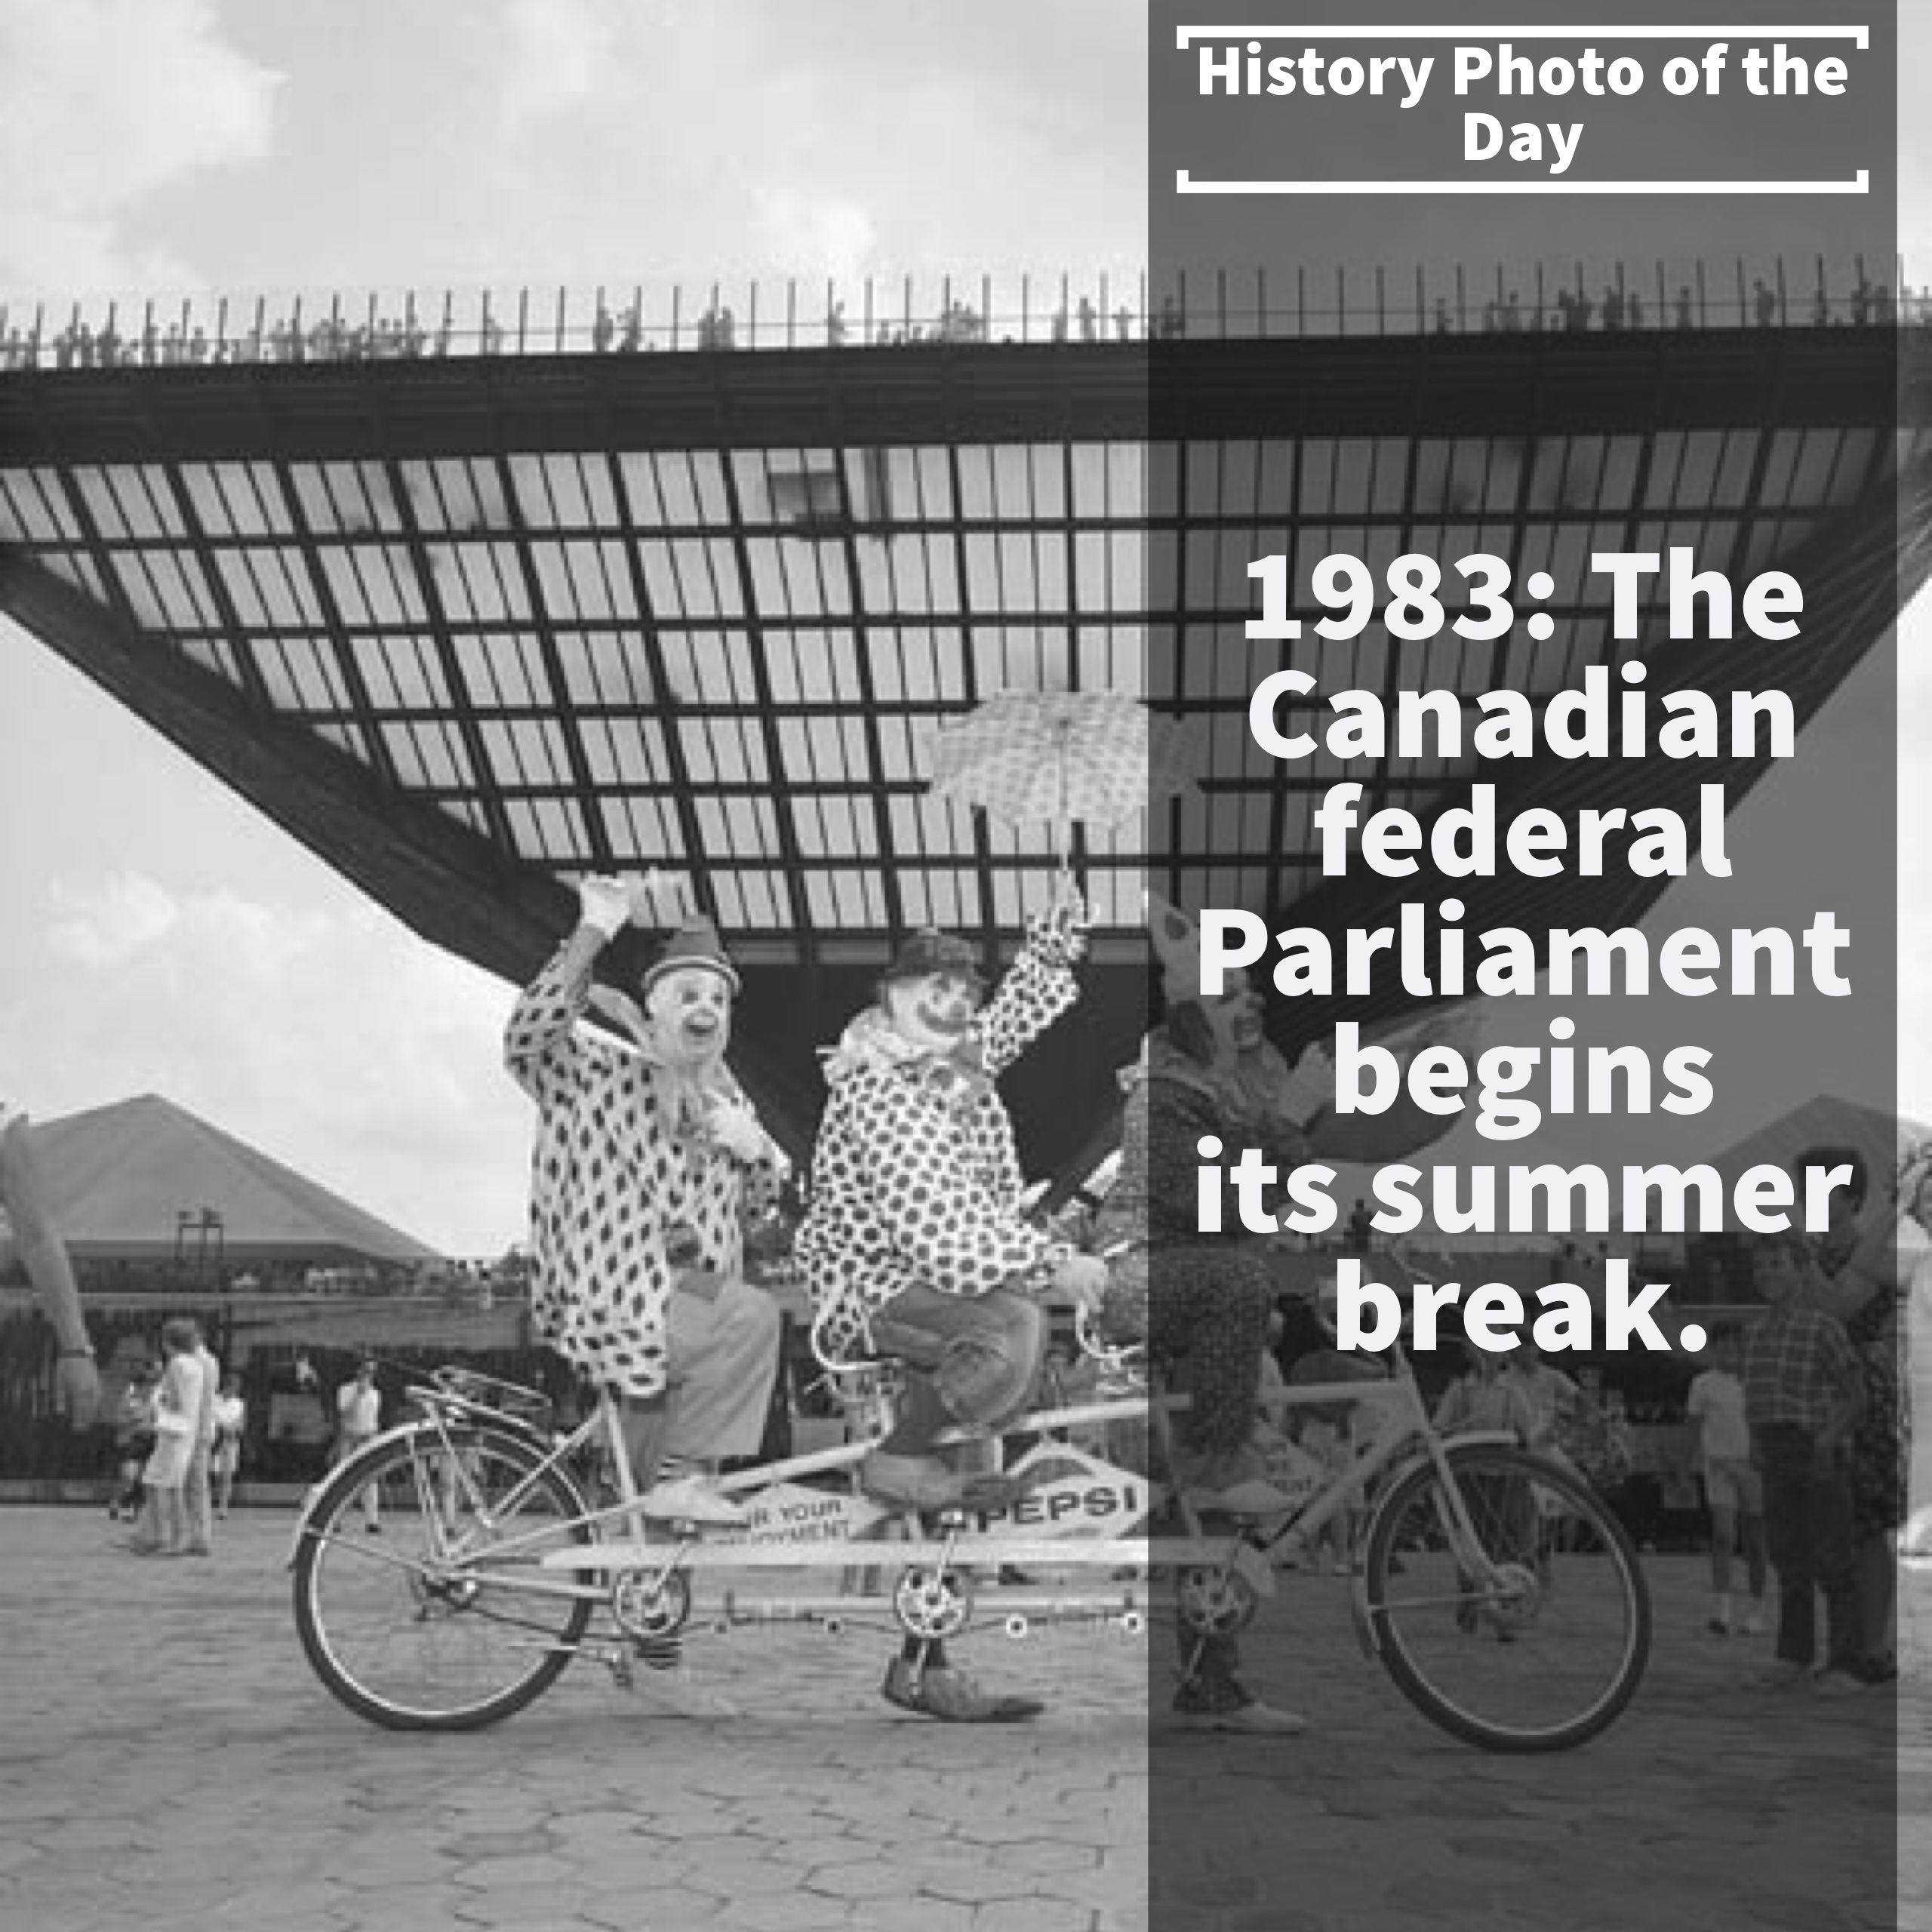 Canada 150 history photo of the say 3 too true fun fact